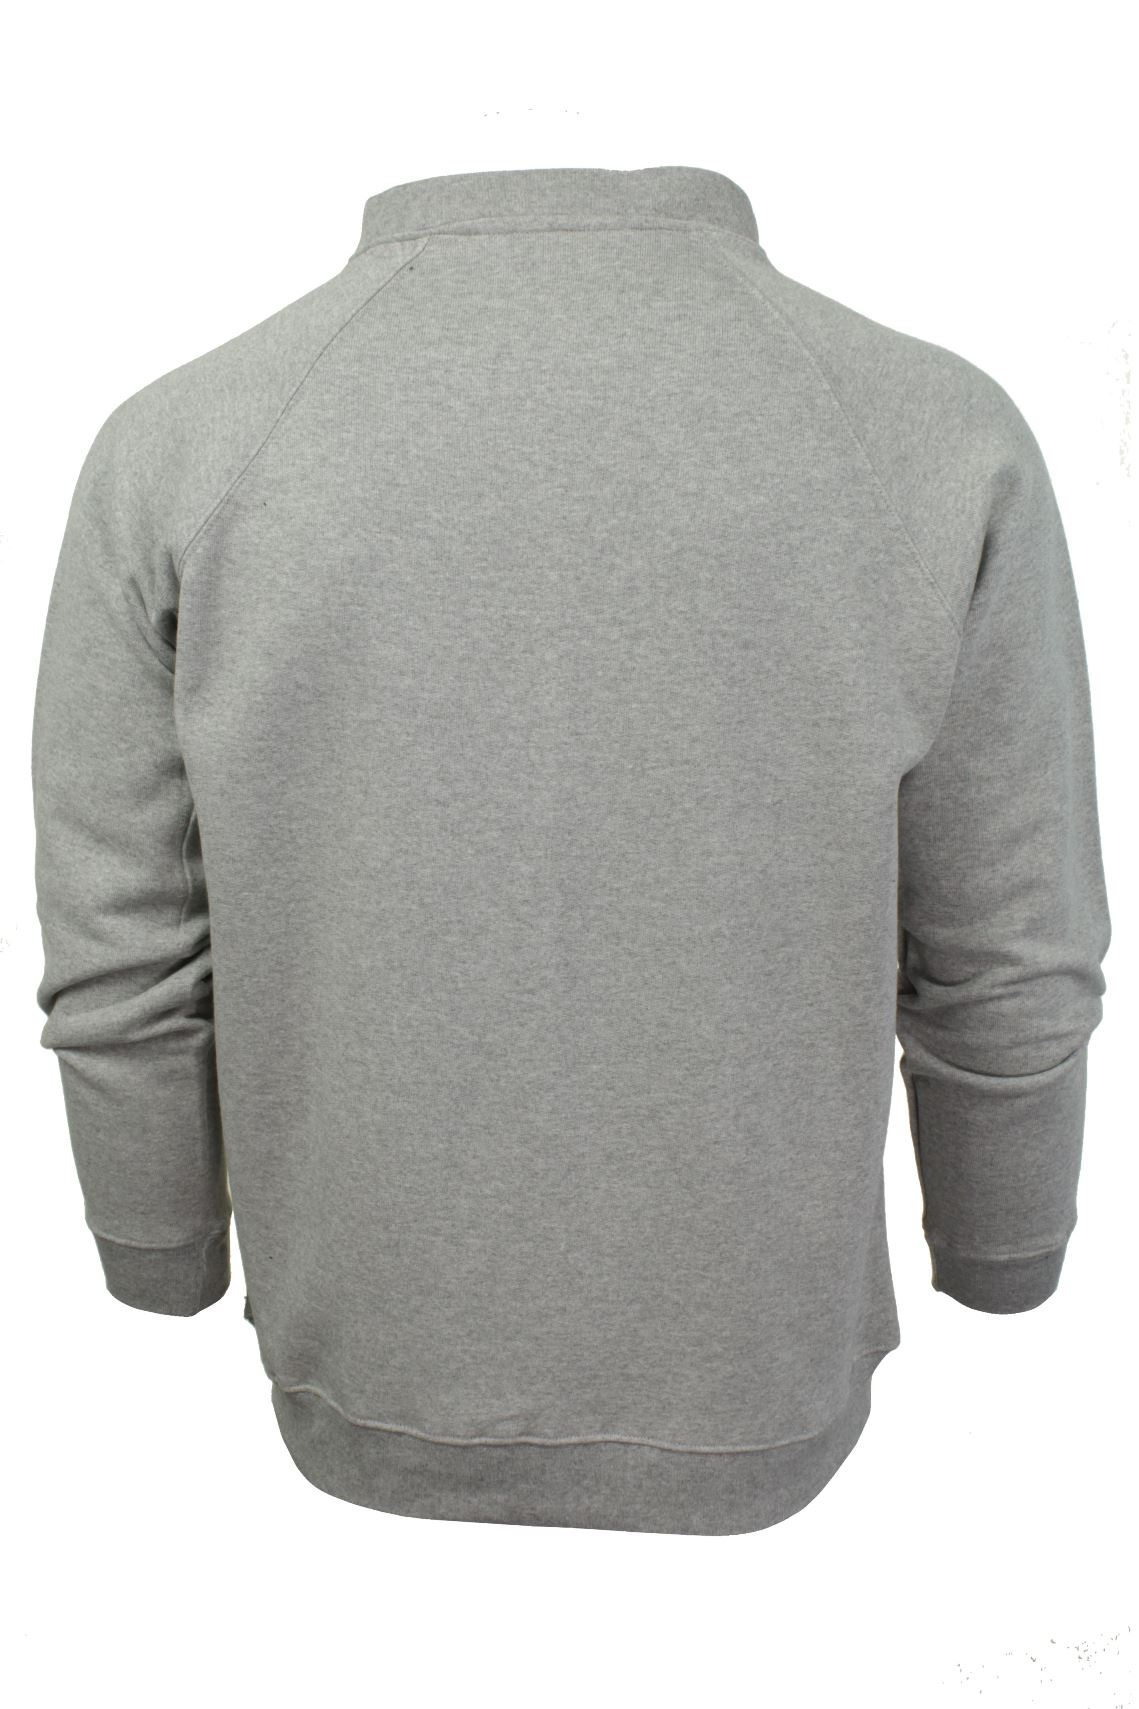 Mens-Zip-Through-Sweatshirt-Jumper-by-Xact-Long-Sleeved thumbnail 11